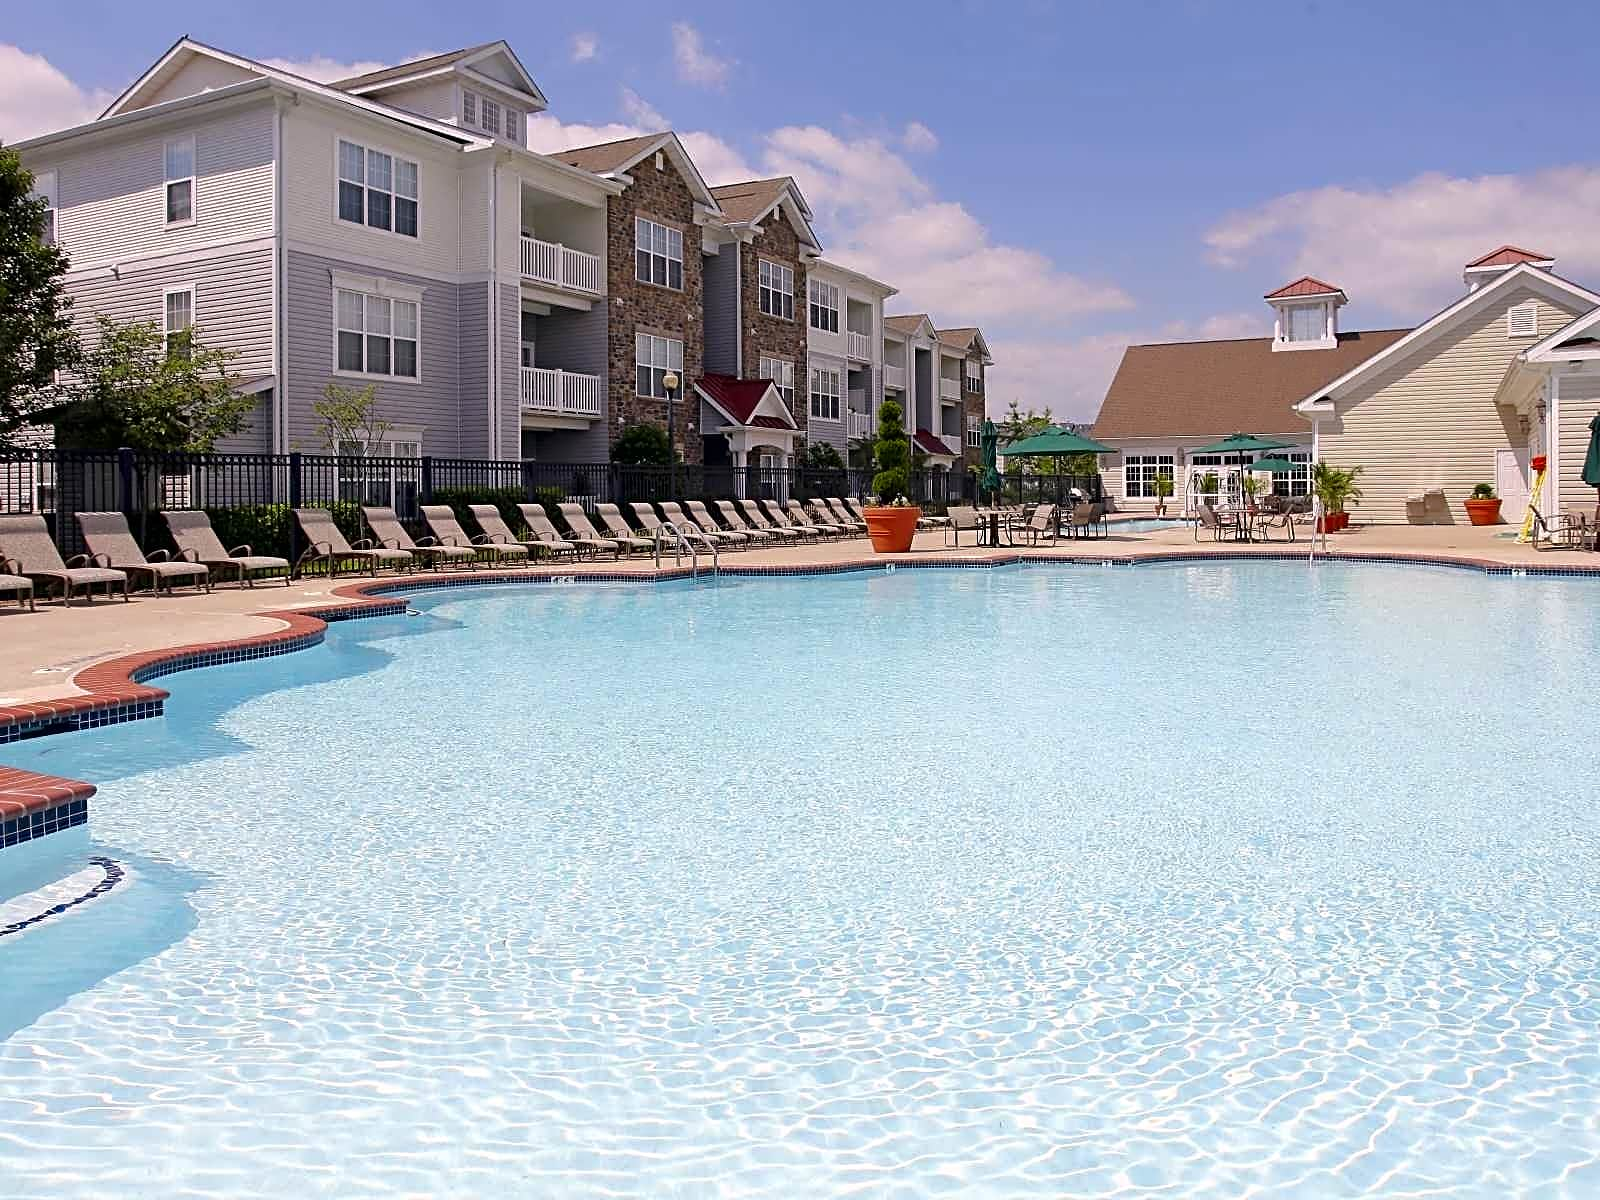 Apartments In Ellicott City Md